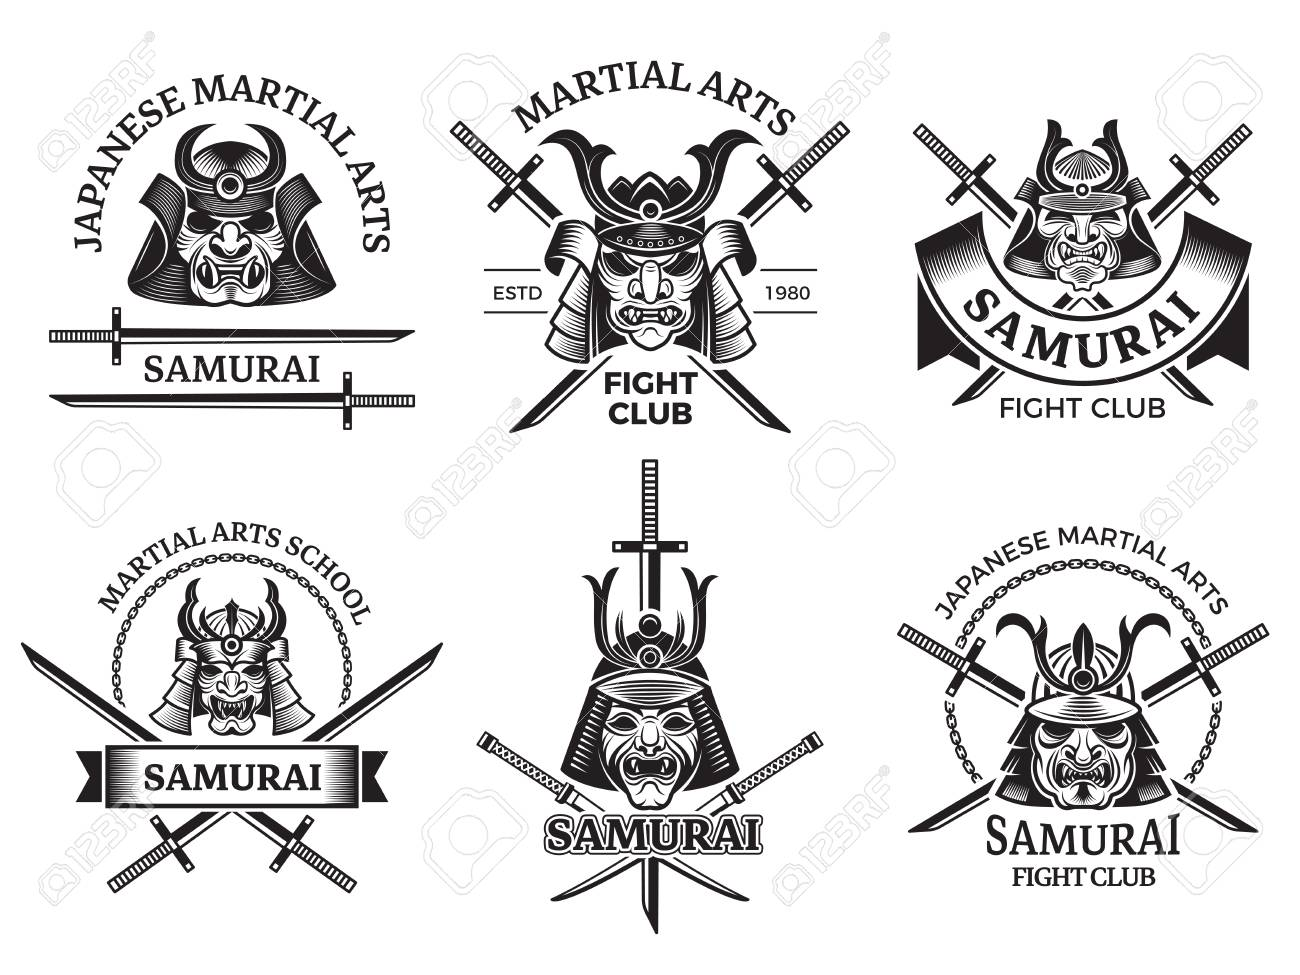 Martial Asian Labels Samurai Agressive Warrior Masks And Sword Royalty Free Cliparts Vectors And Stock Illustration Image 110607980